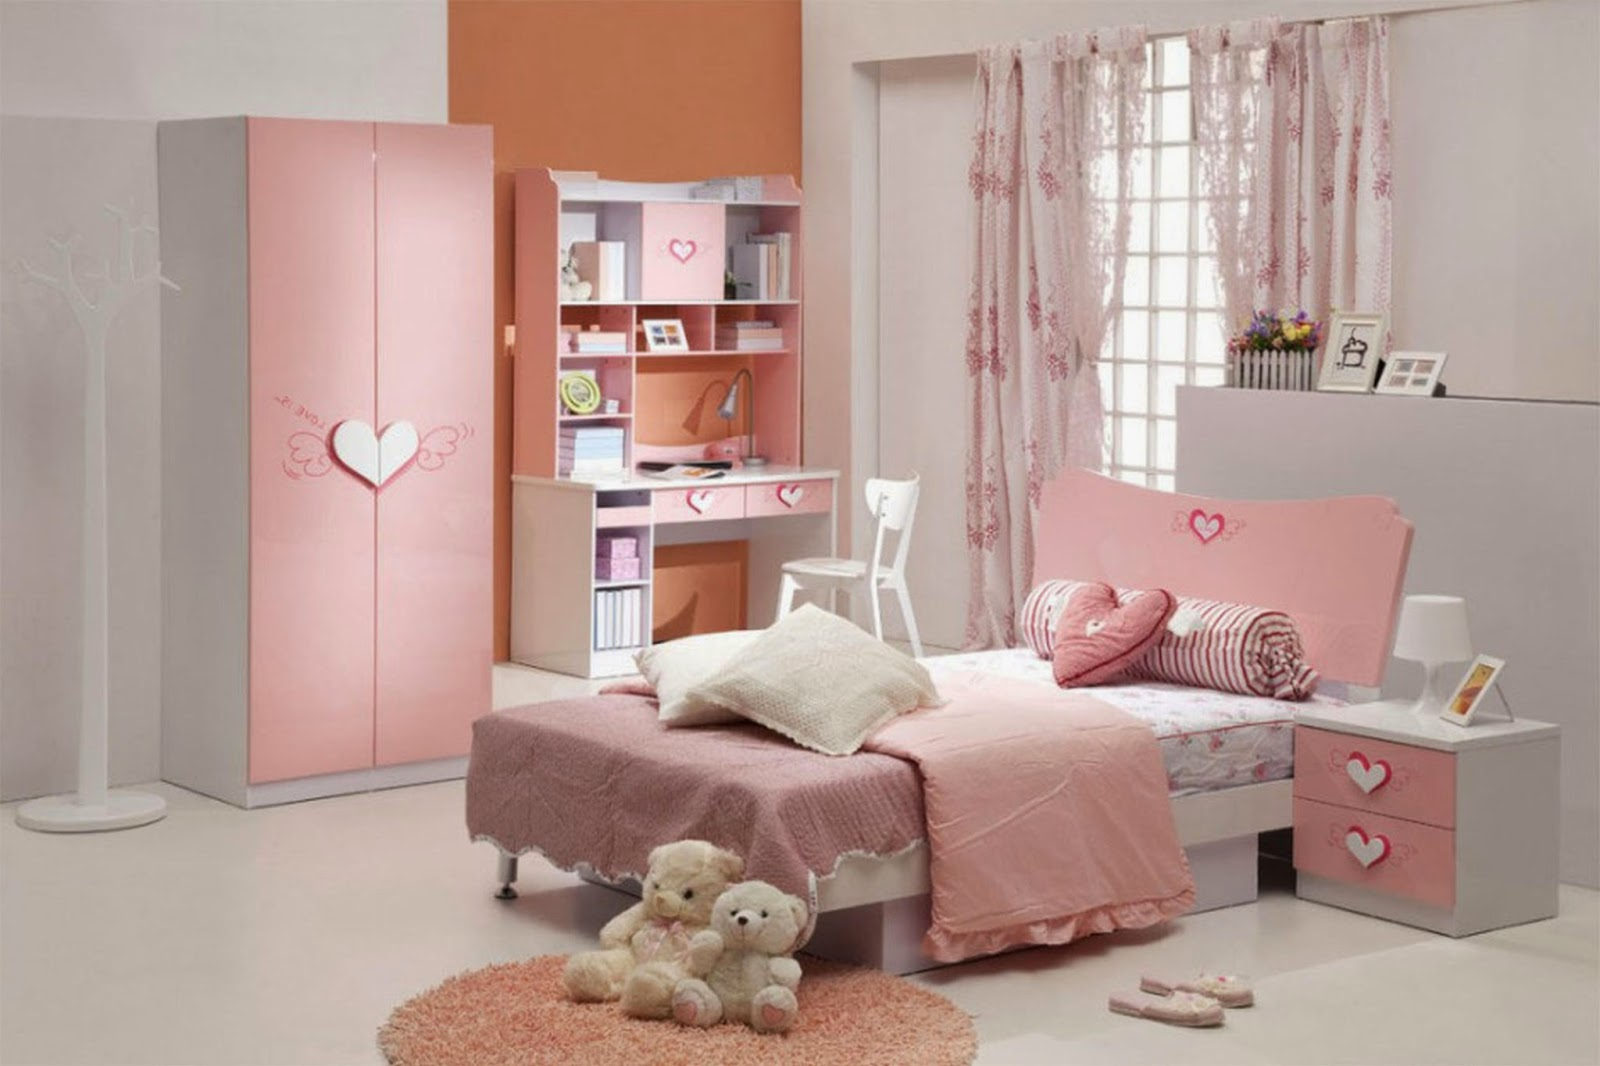 Bedroom decorating ideas for young adults girls - Bedroom Decorating Ideas For Young Adults Girls 34